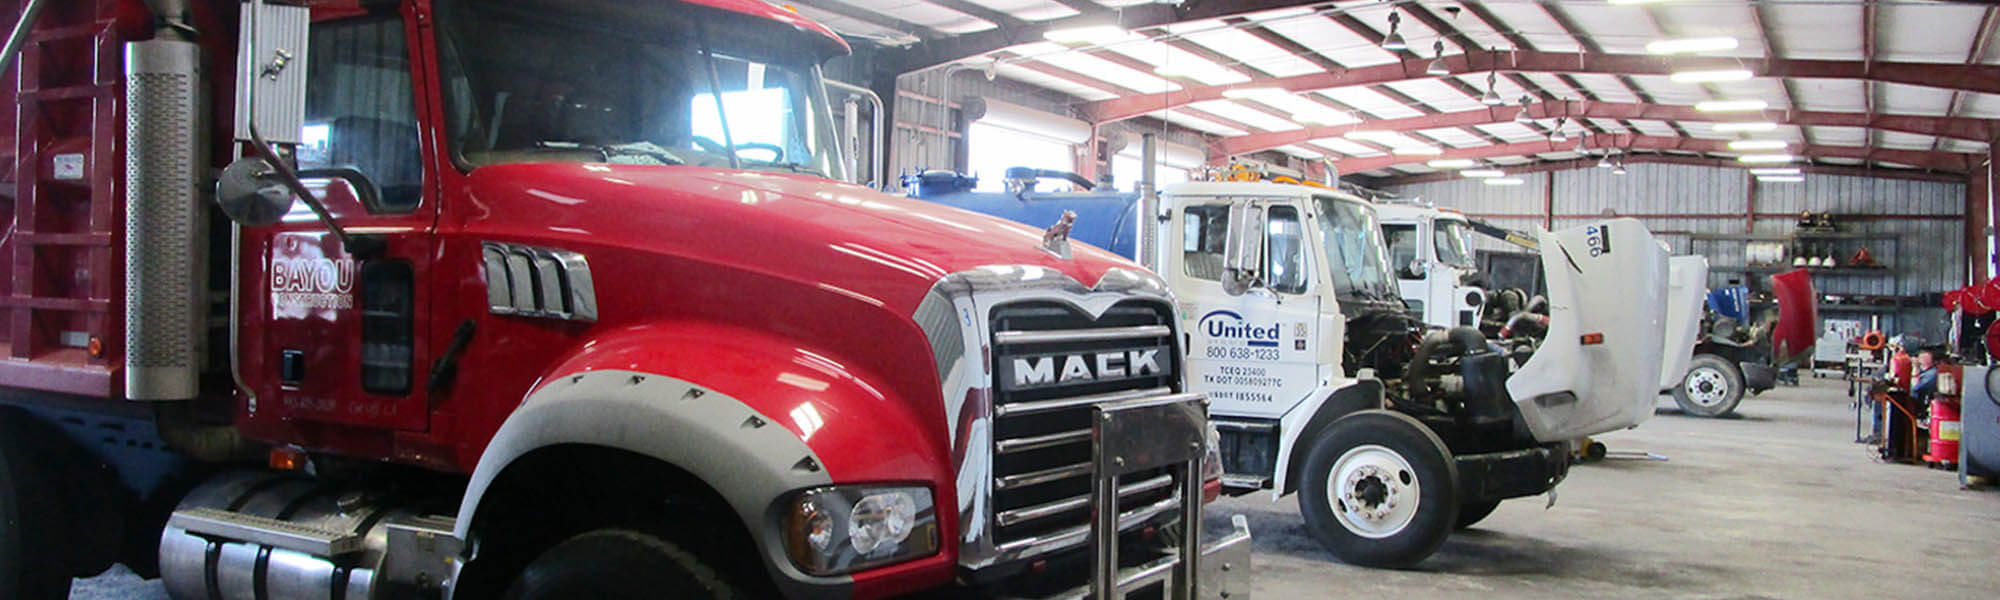 All Truck Parts & Equipment Co. Service Department